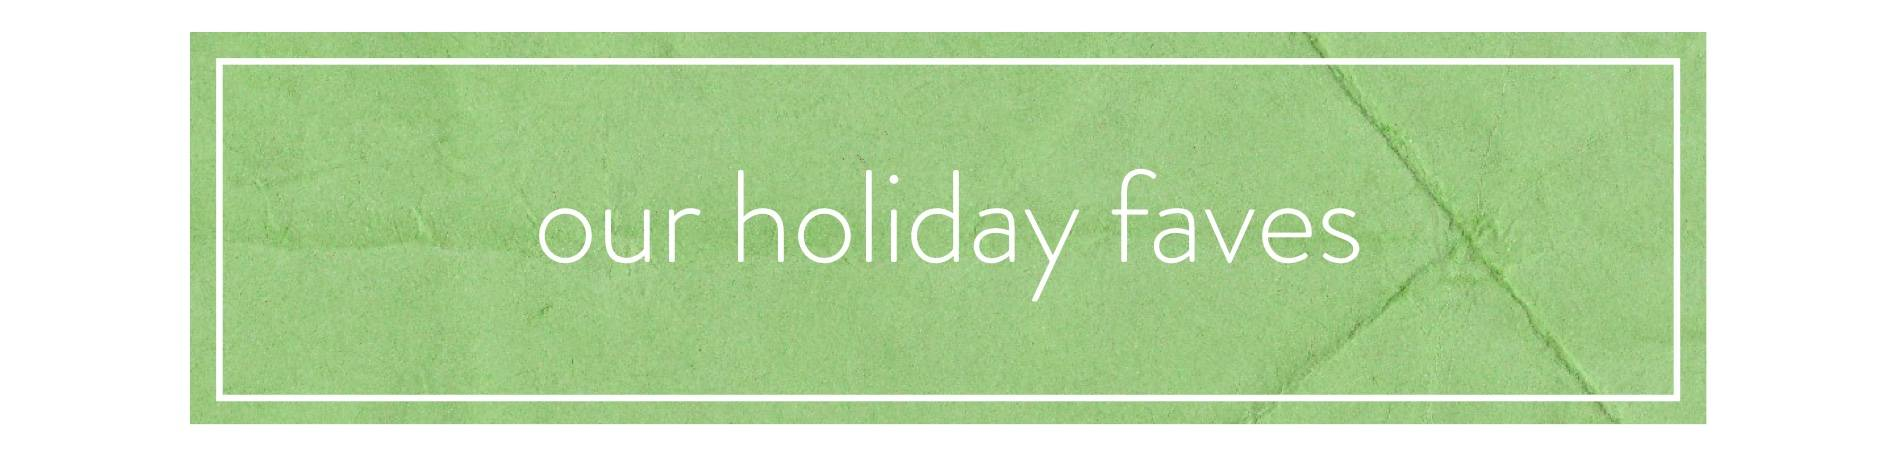 our holiday favorites